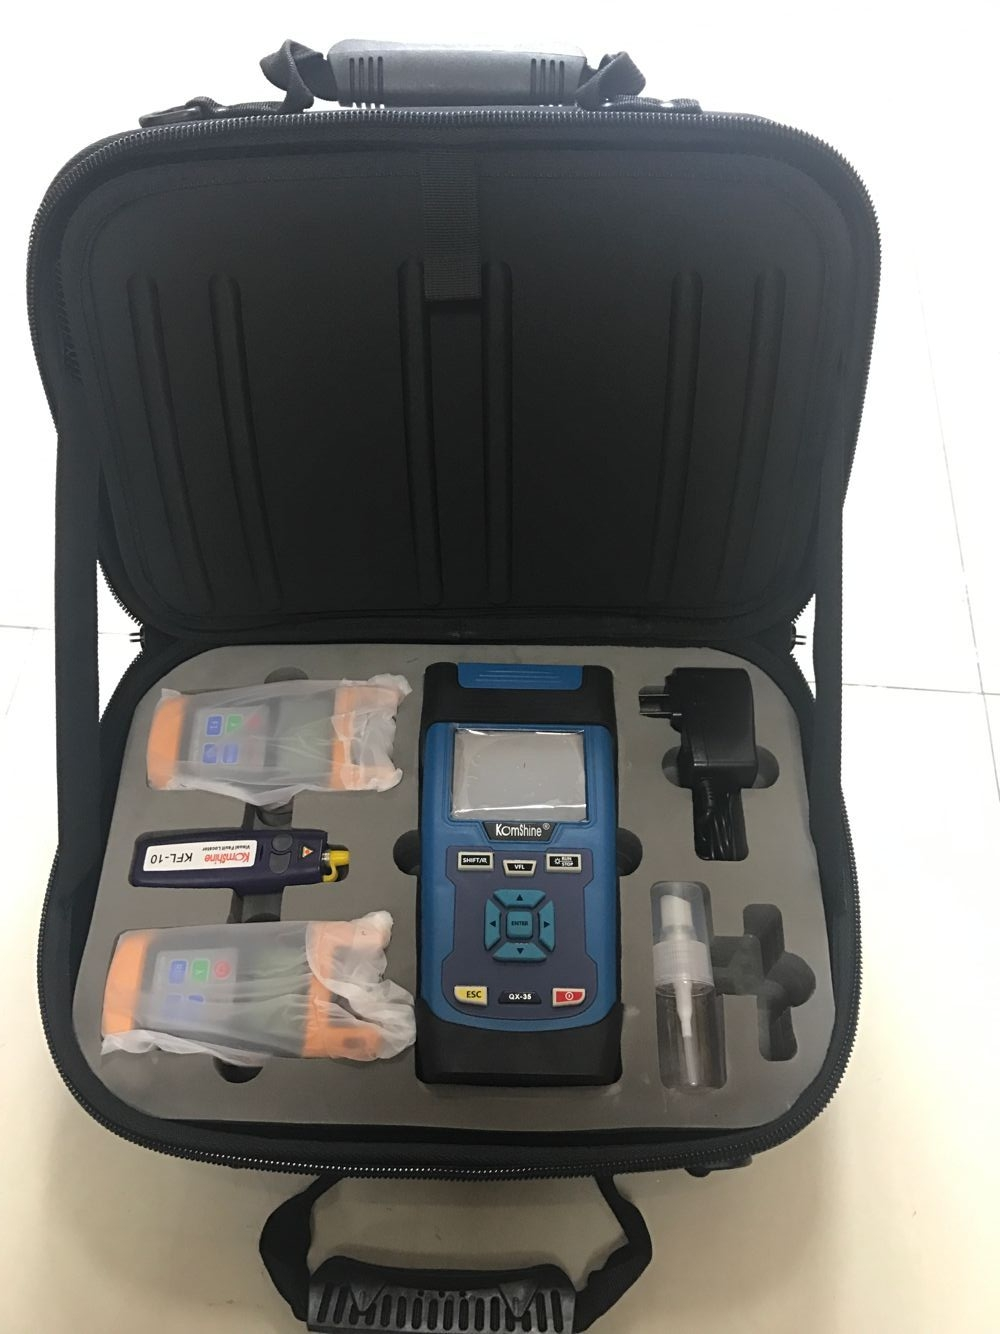 FTTH Tester Toolkit KomShine KQX-45 with QX45 OTDR 32/30dB /Optical Power Meter & Optical Light Source & VFLFTTH Tester Toolkit KomShine KQX-45 with QX45 OTDR 32/30dB /Optical Power Meter & Optical Light Source & VFL